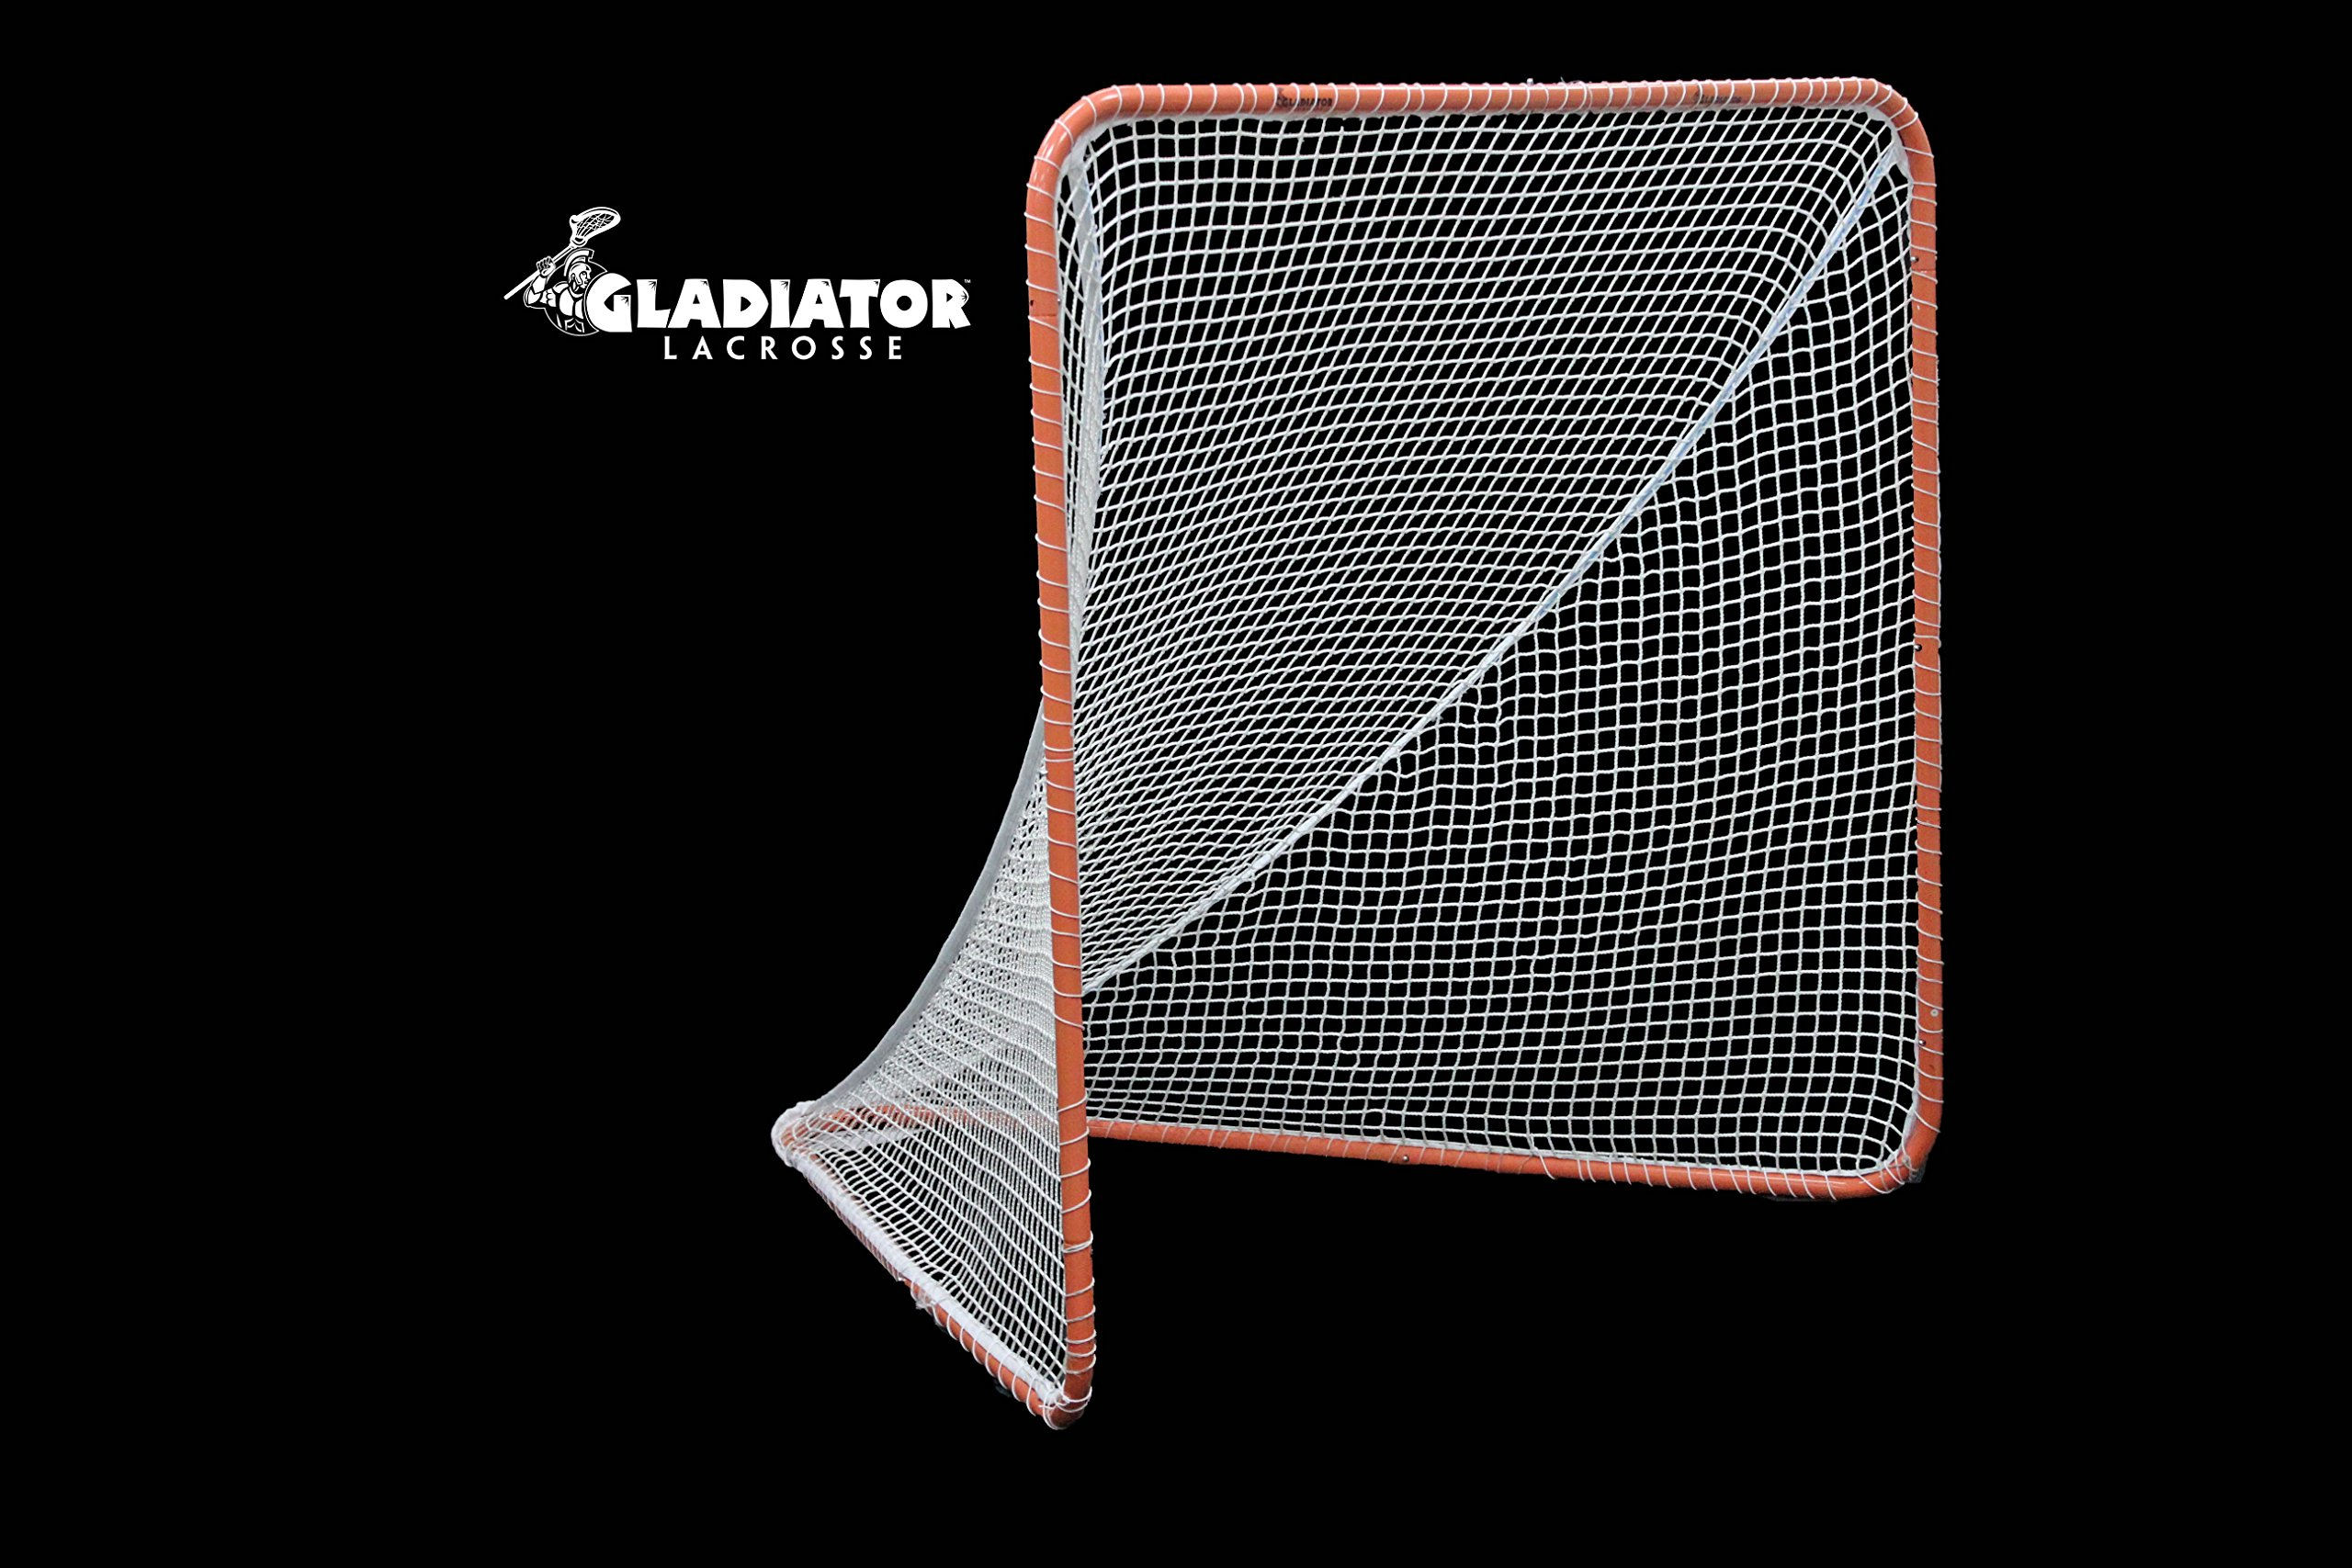 Gladiator Official Lacrosse Goal Net, Orange, 100% Steel Frame, 6 x 6-Foot